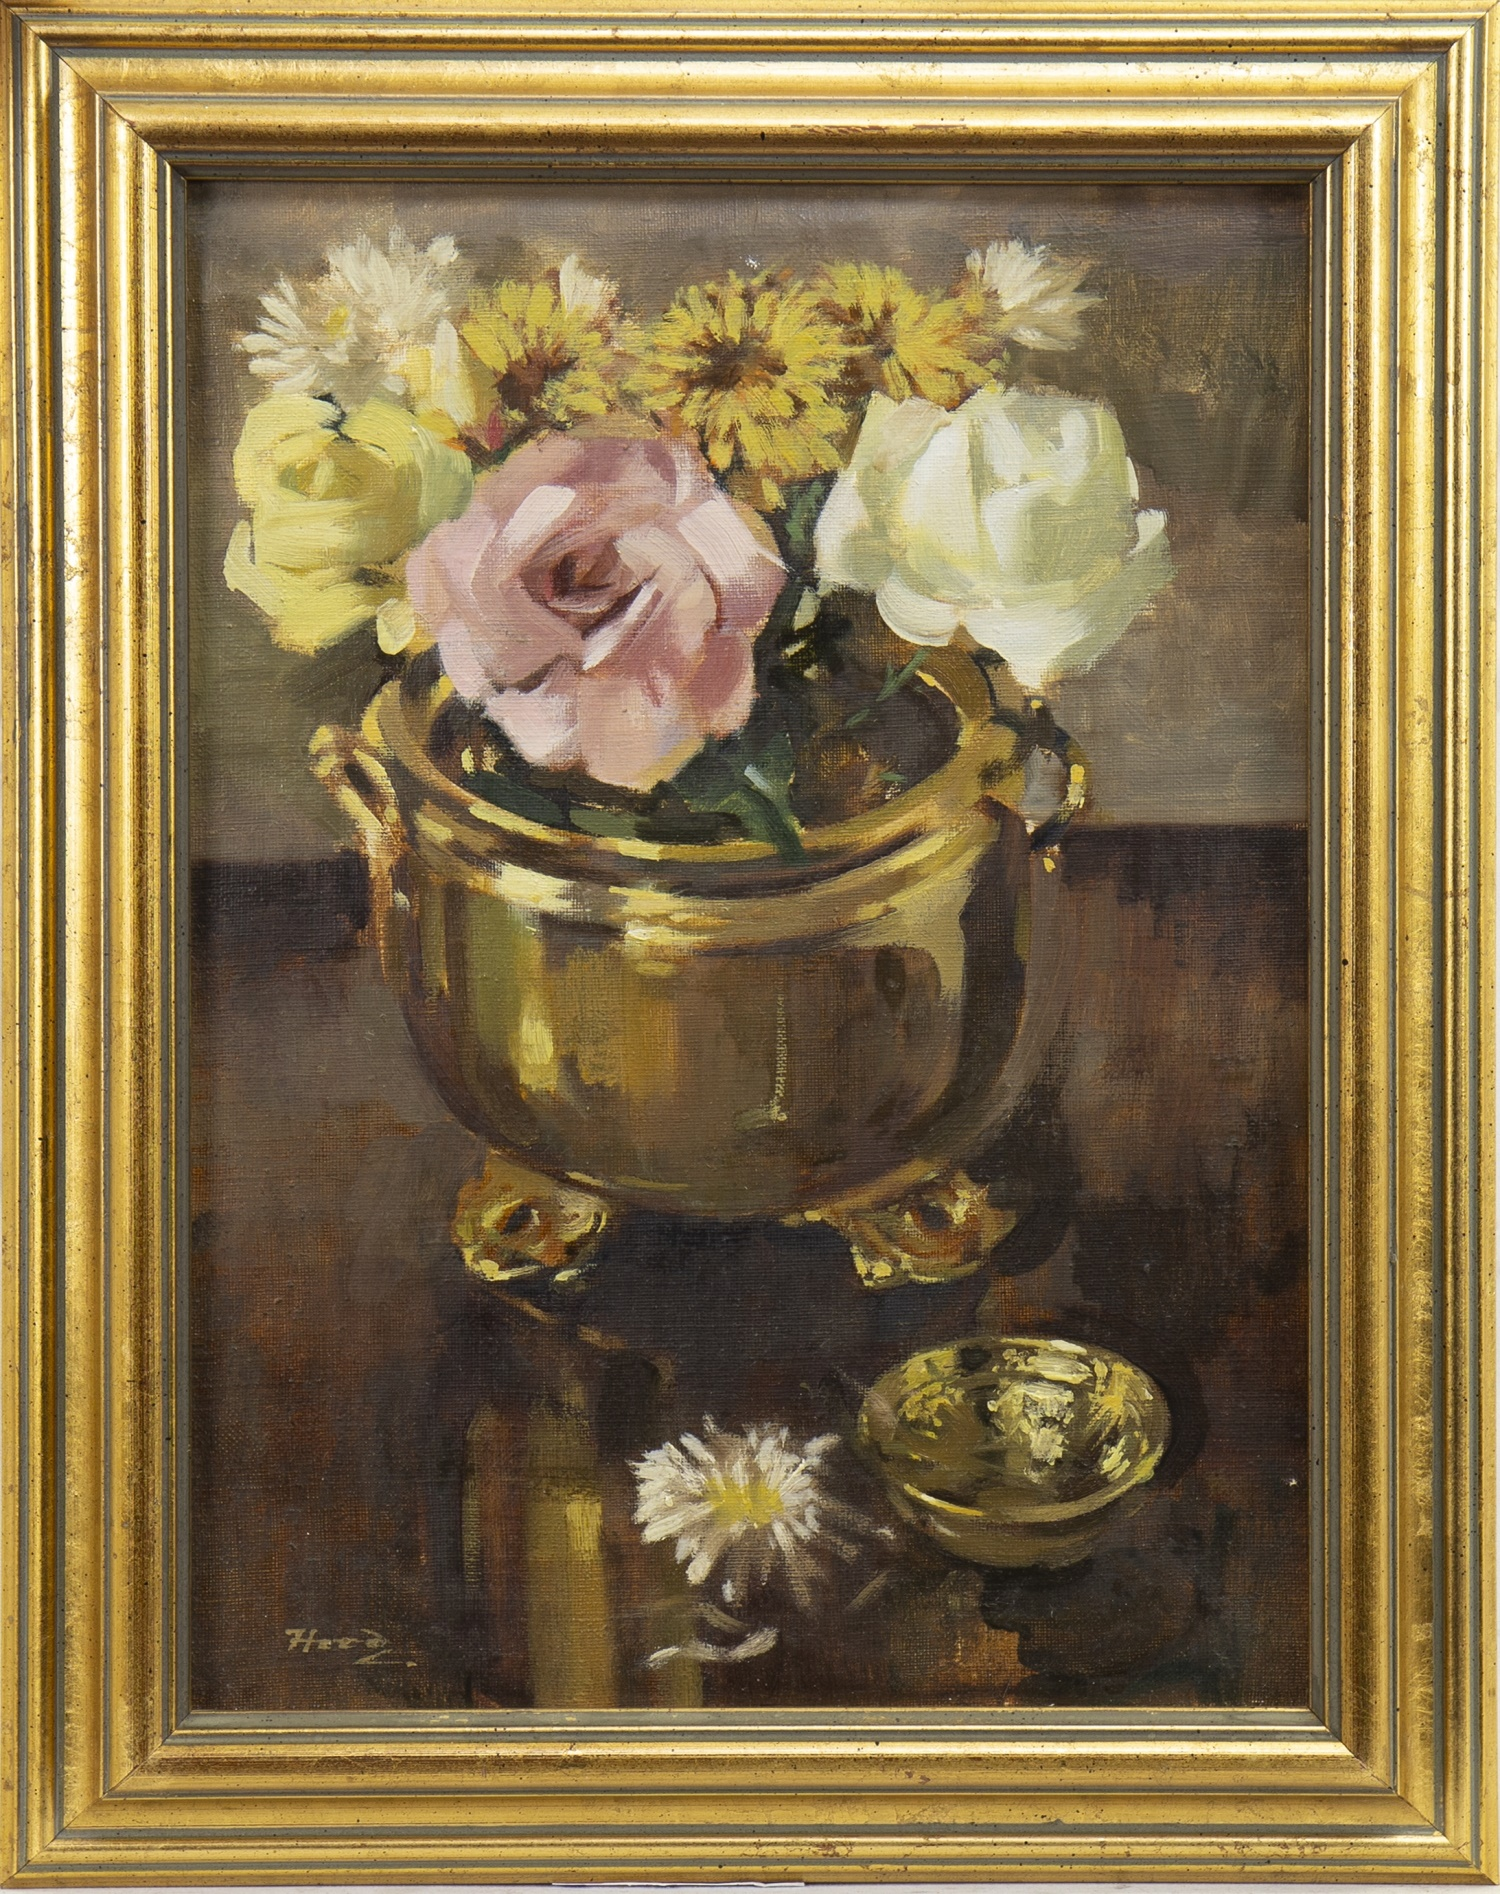 Lot 4 - ROSES AND CHRYSANTHEMUMS, AN OIL BY ERNEST HOOD